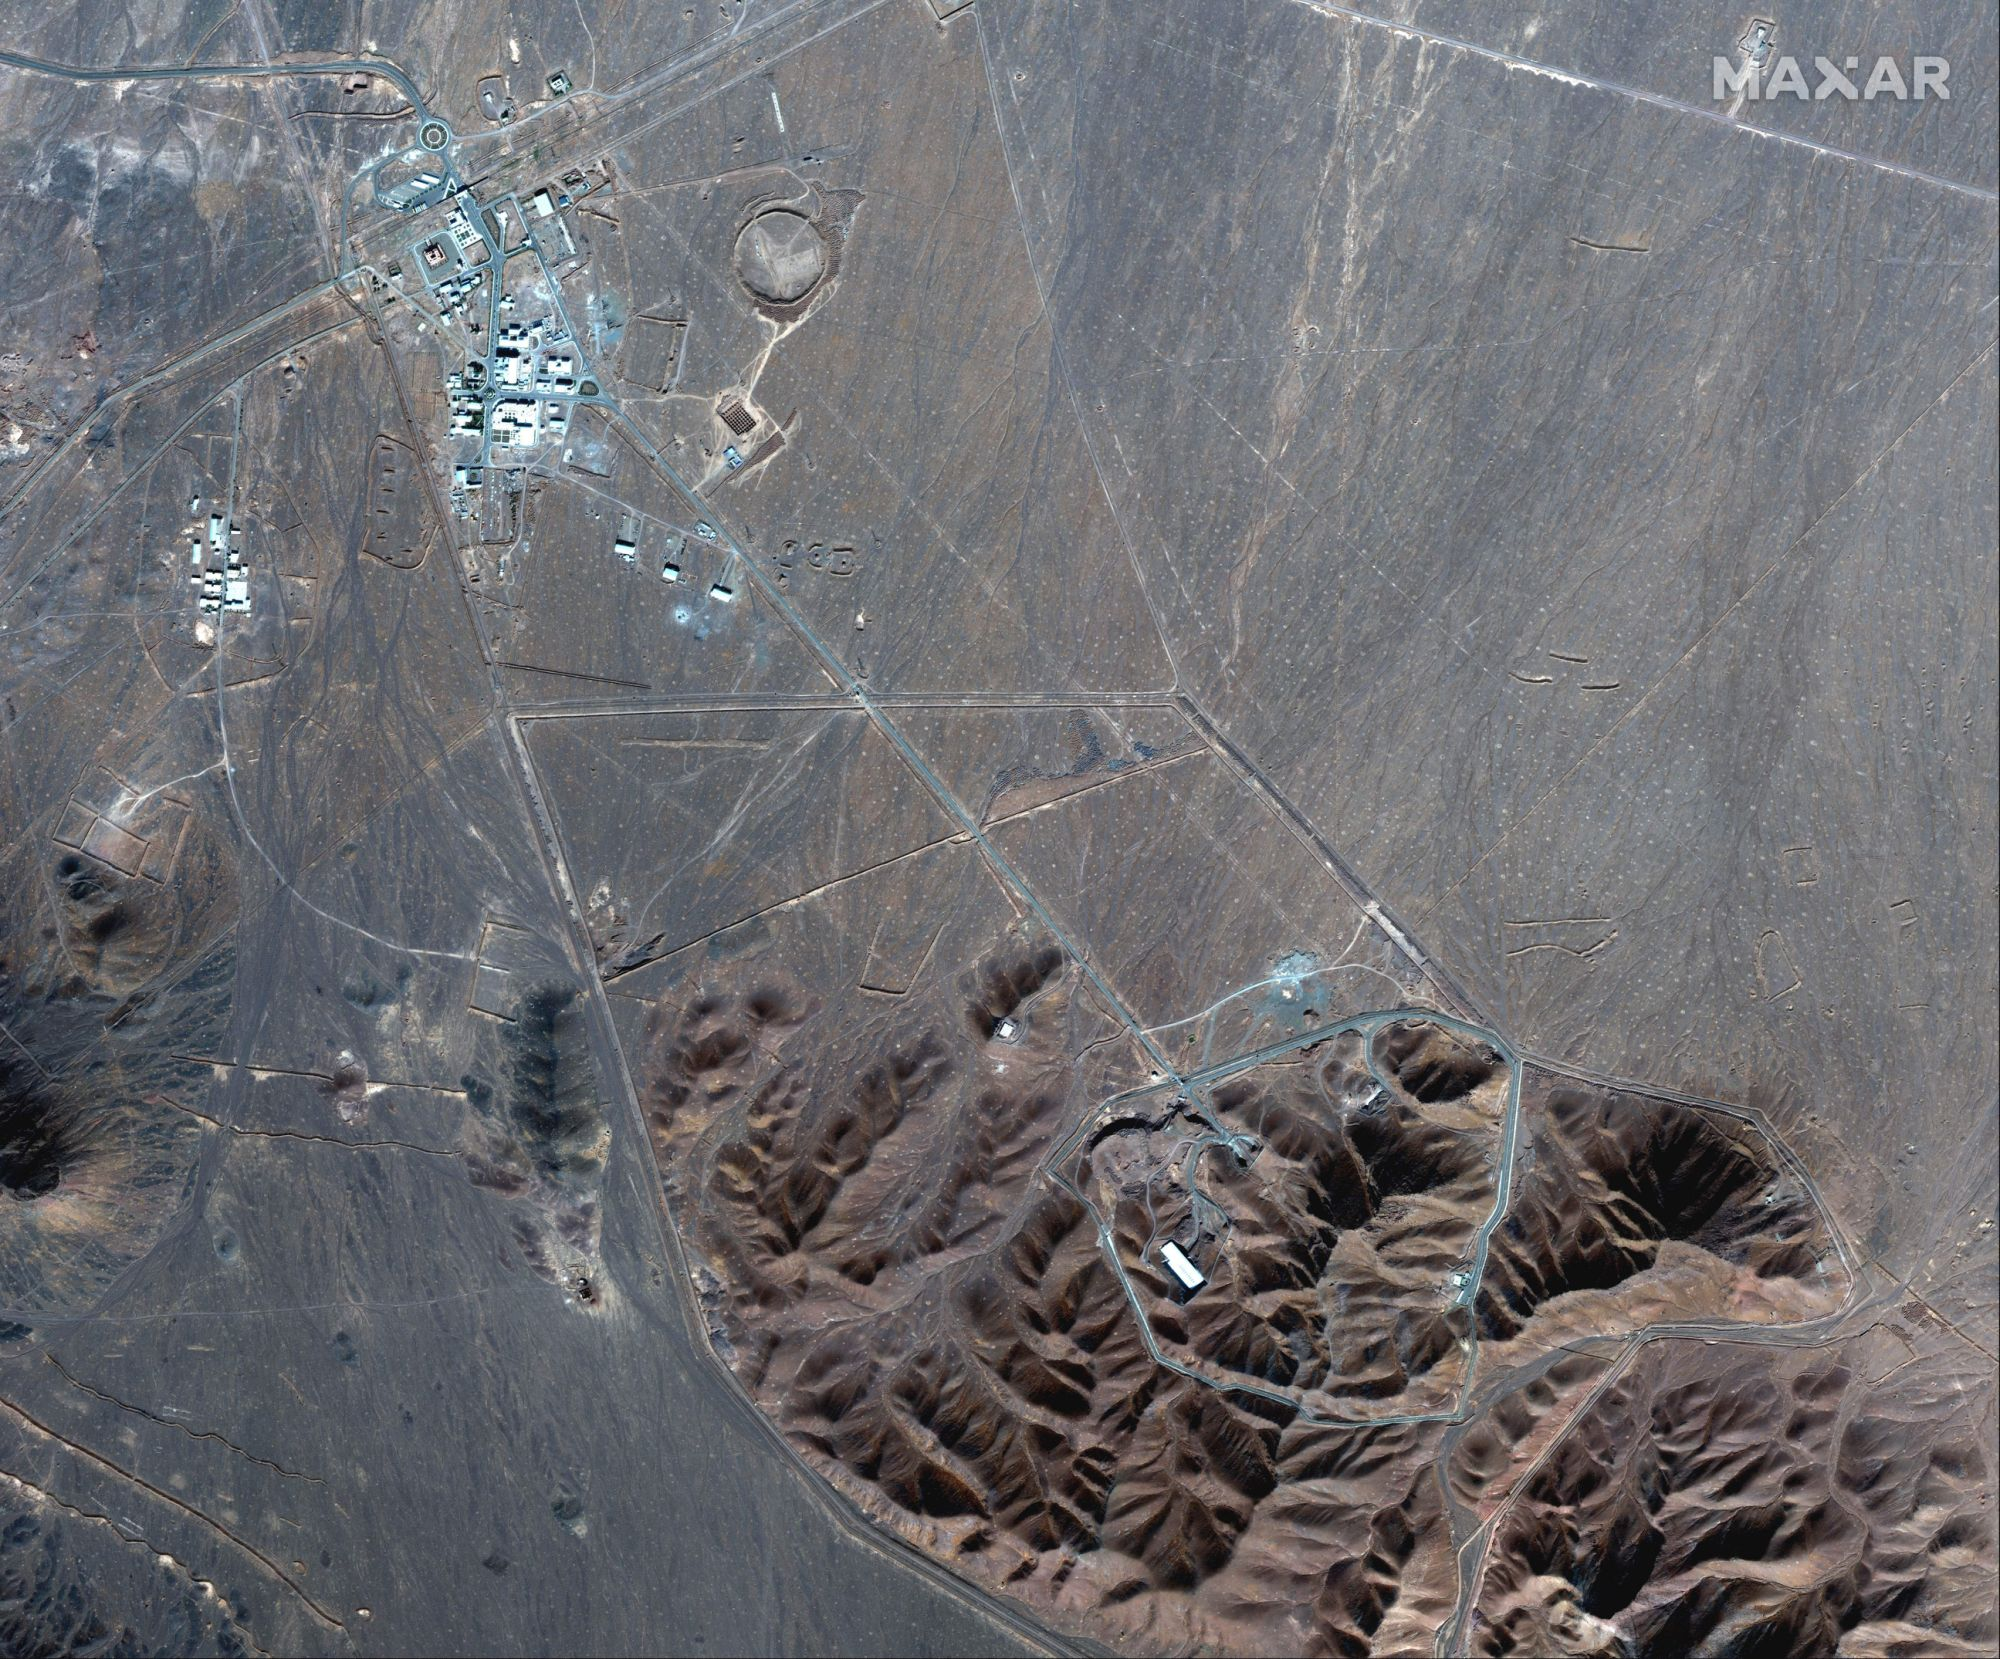 Iran tells inspectors it plans up to 20% enrichment at Fordo